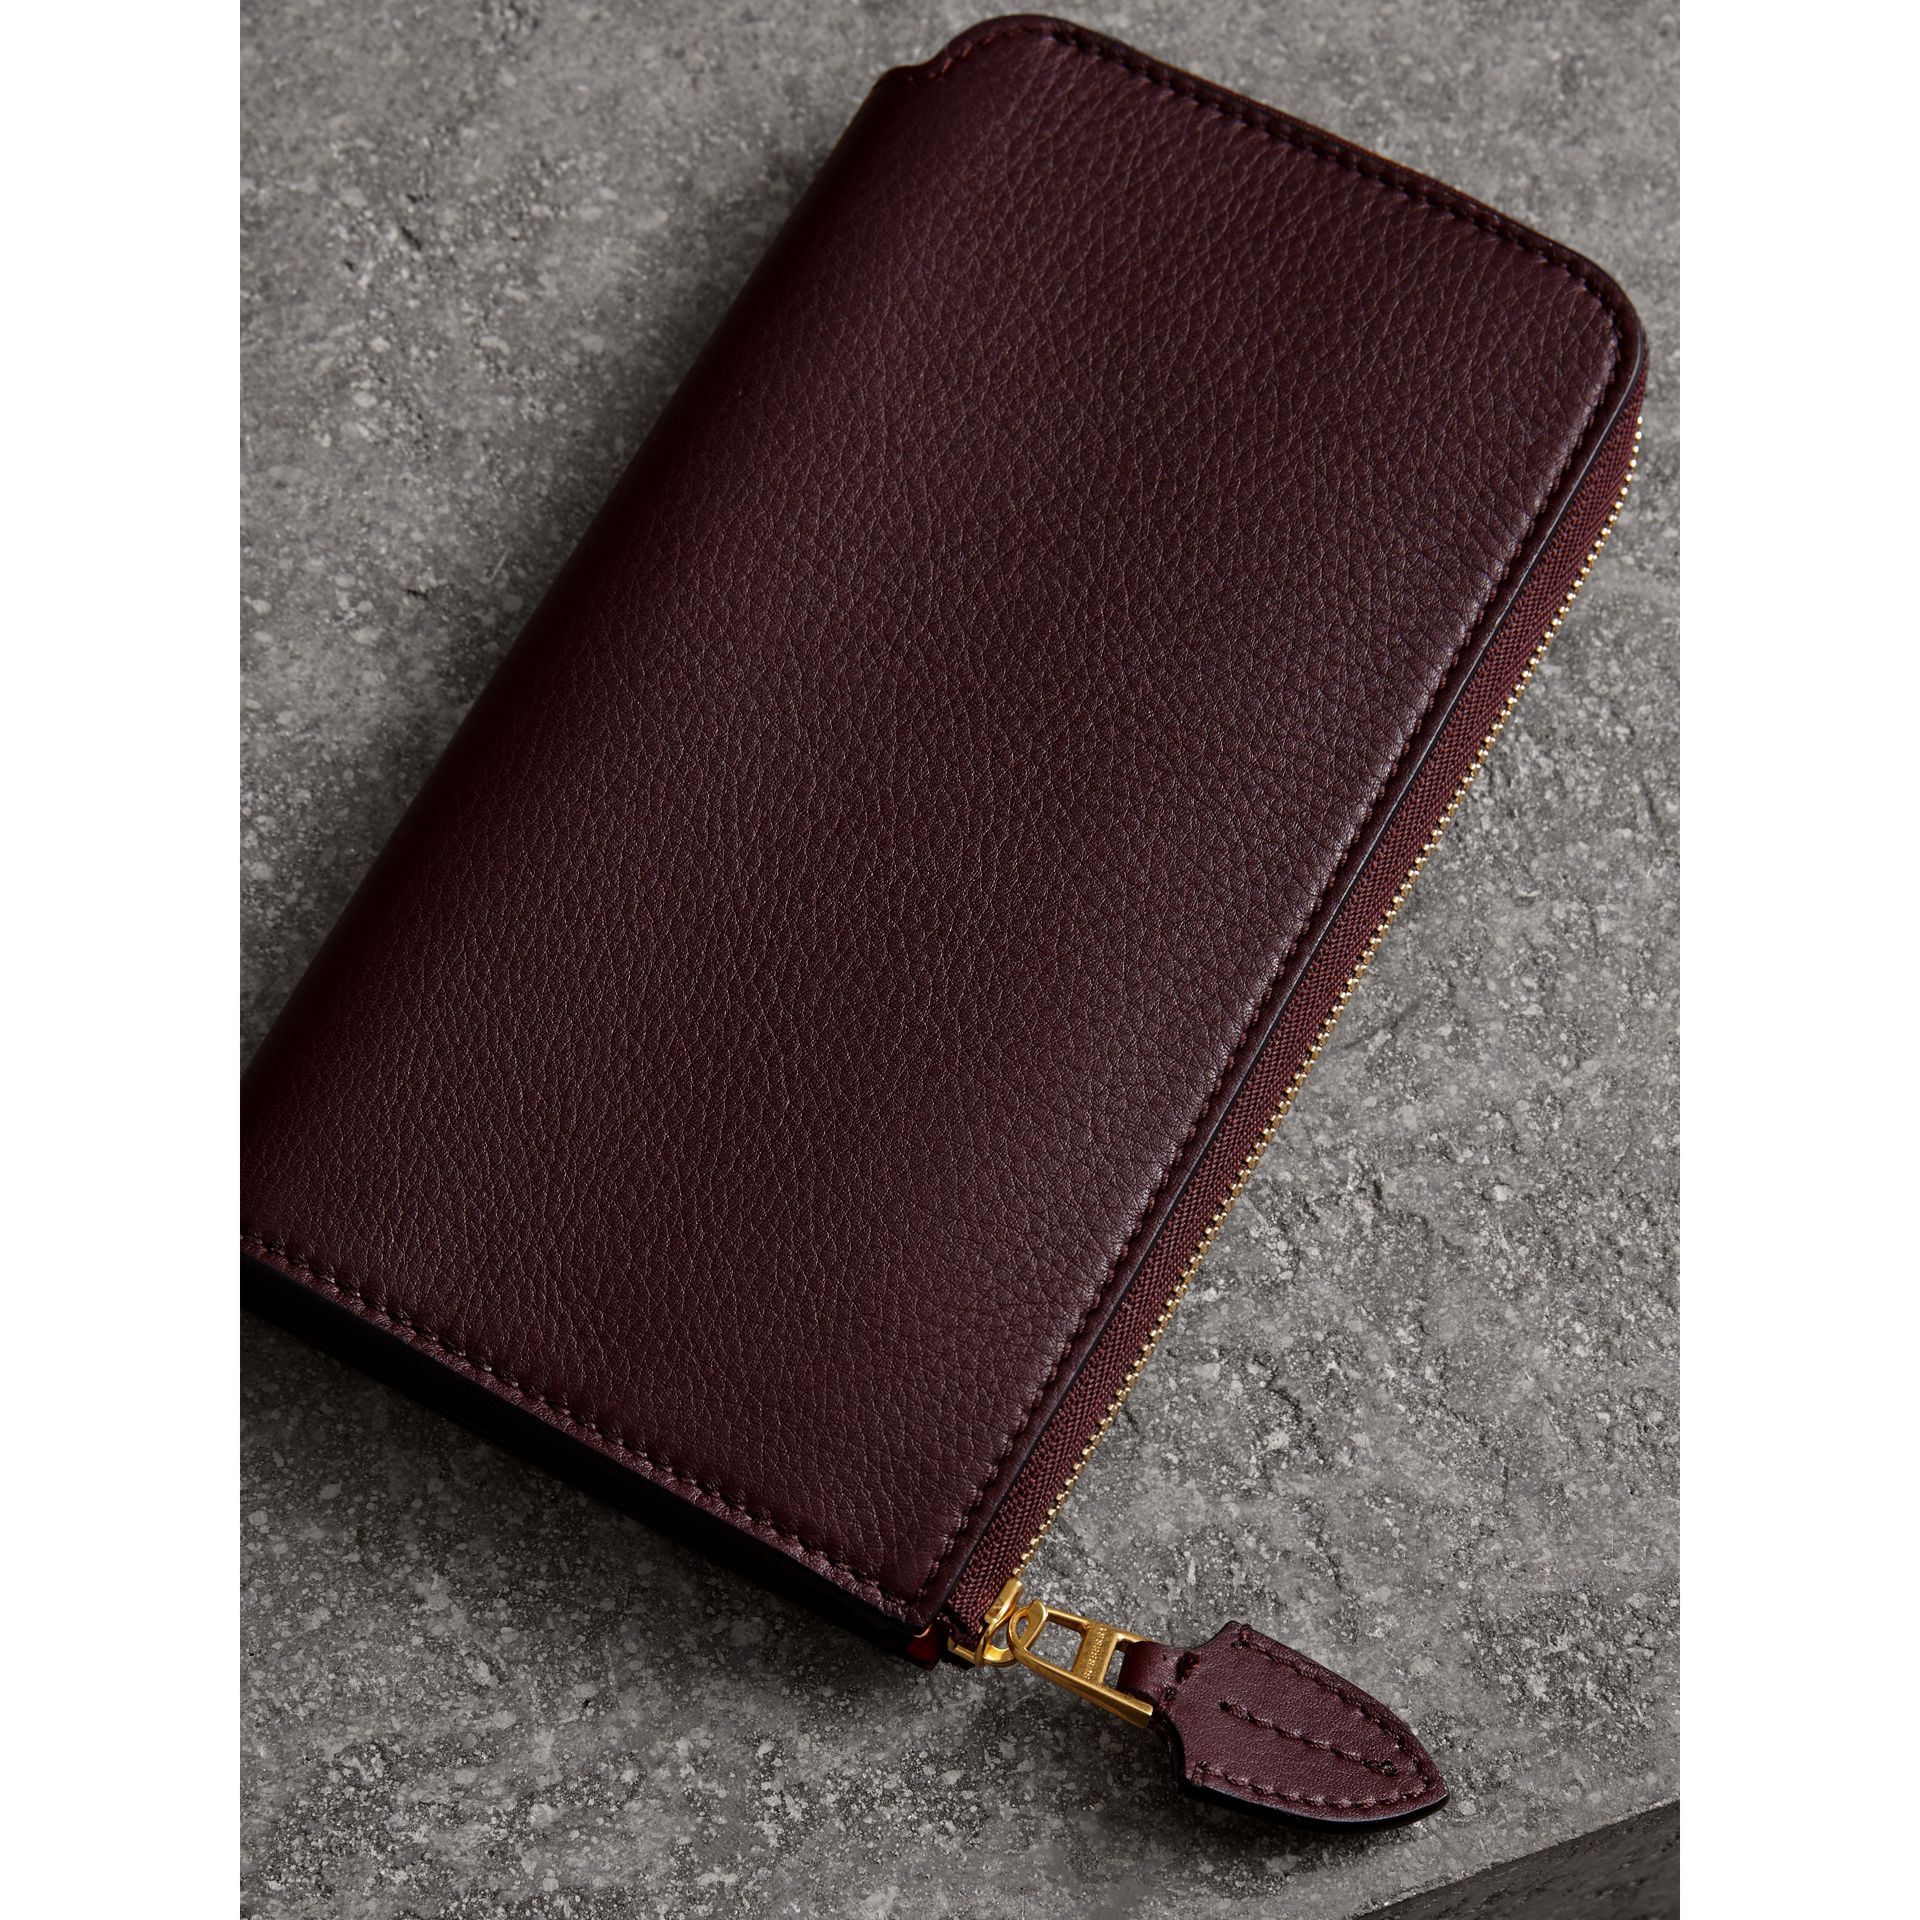 Two-tone Leather Ziparound Wallet and Coin Case in Deep Claret - Women | Burberry Australia - gallery image 2